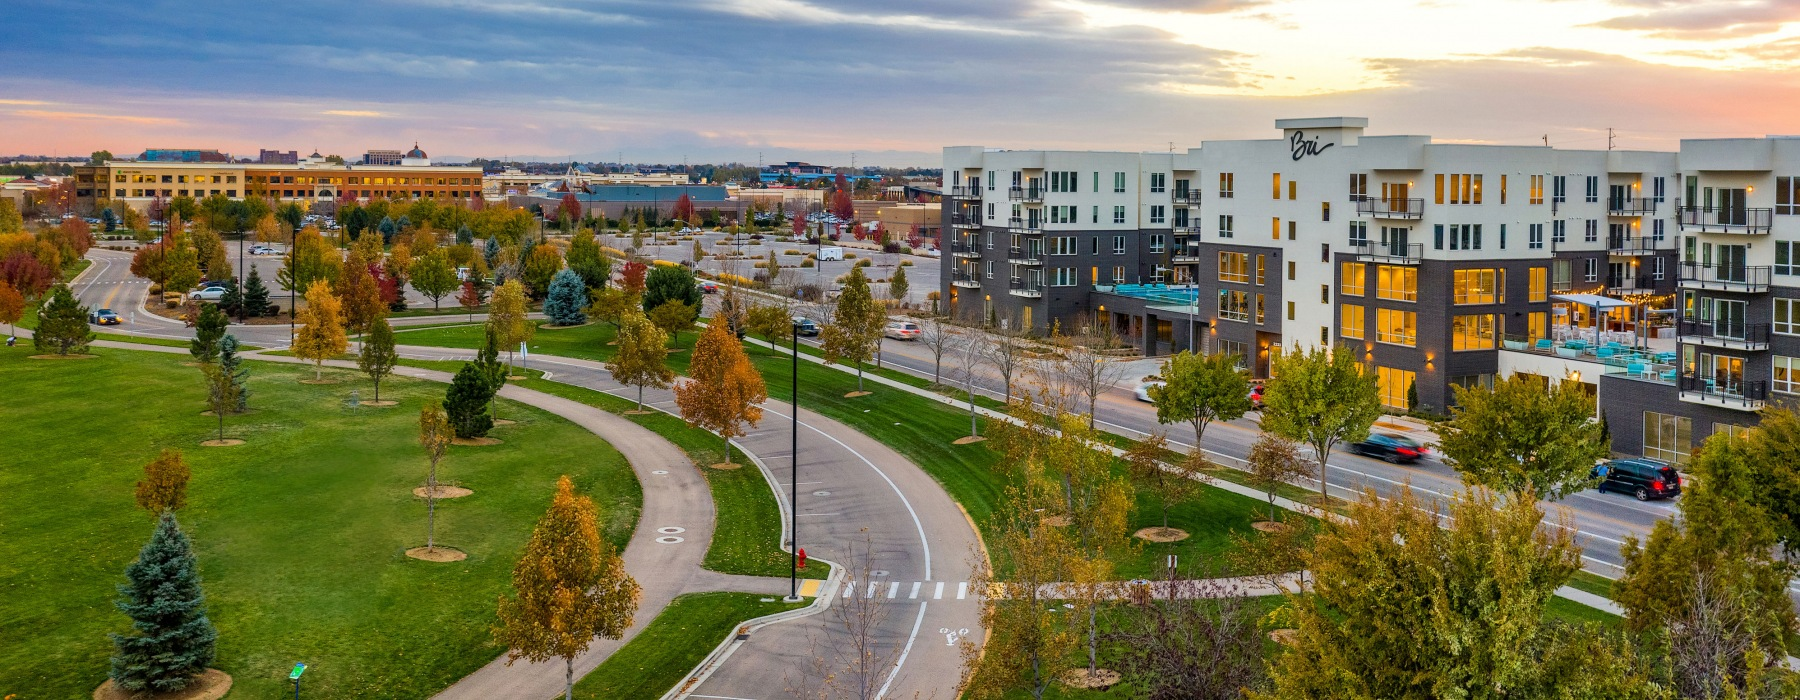 Explore Your Neighborhood at The Village at Meridian